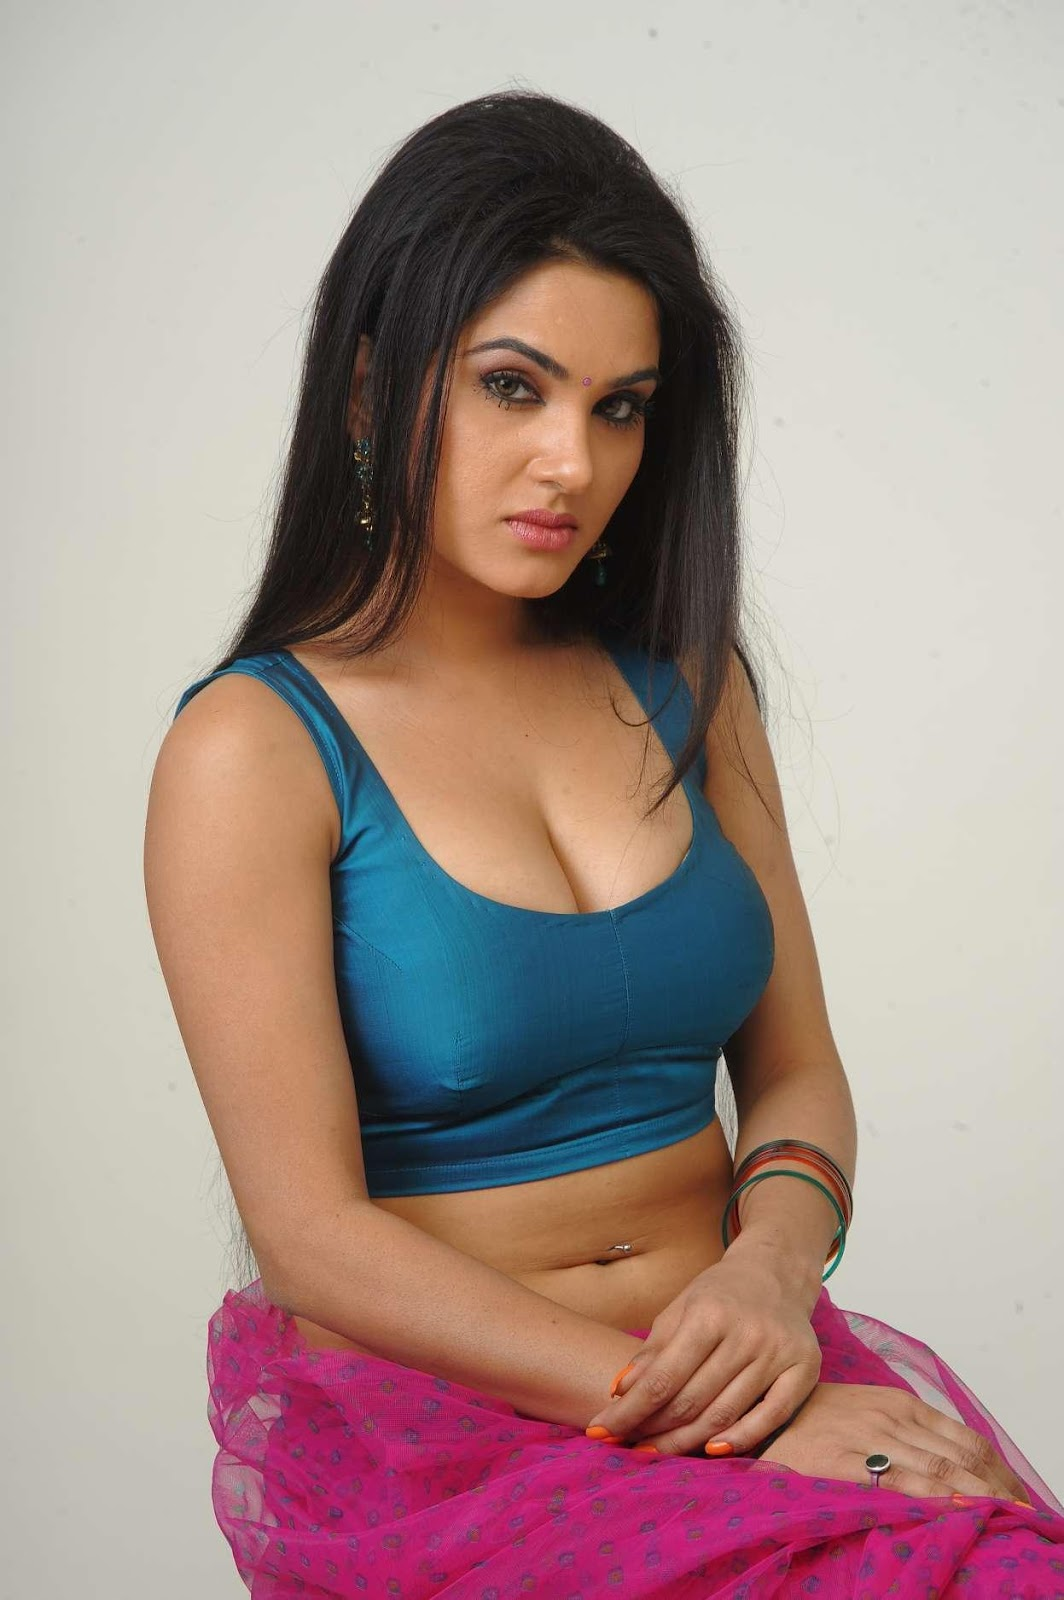 indian bhabhi wallpaper sexy new